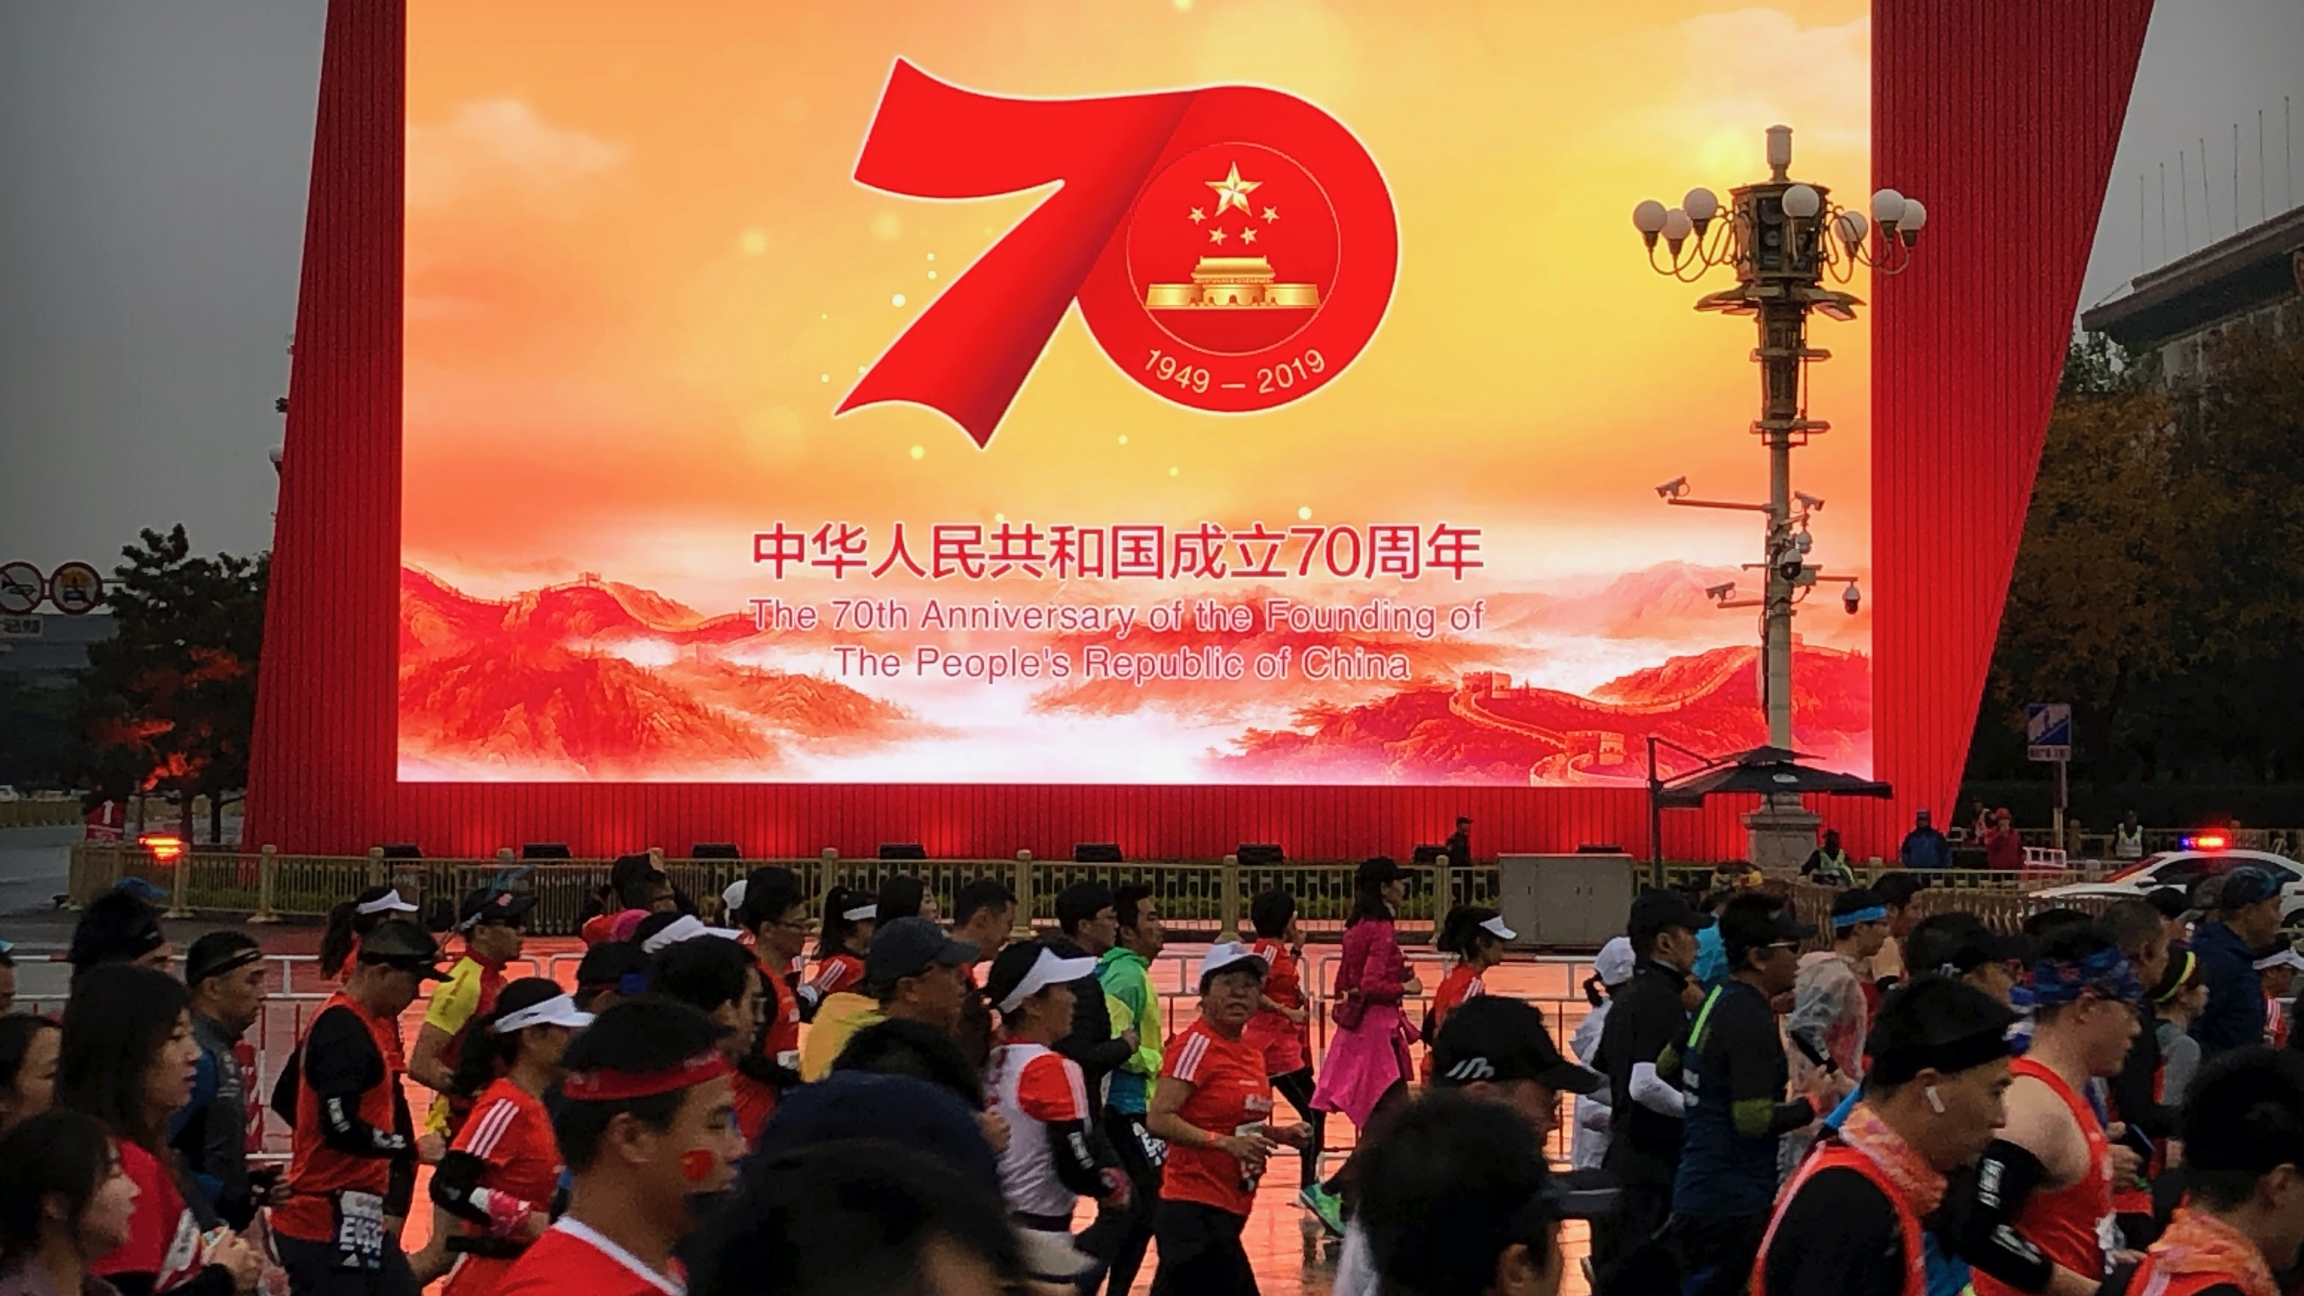 Runners pass by a large video screen commemorating the 70th anniversary of the founding of Communist China during the Beijing Marathon in Beijing, Nov. 3, 2019.